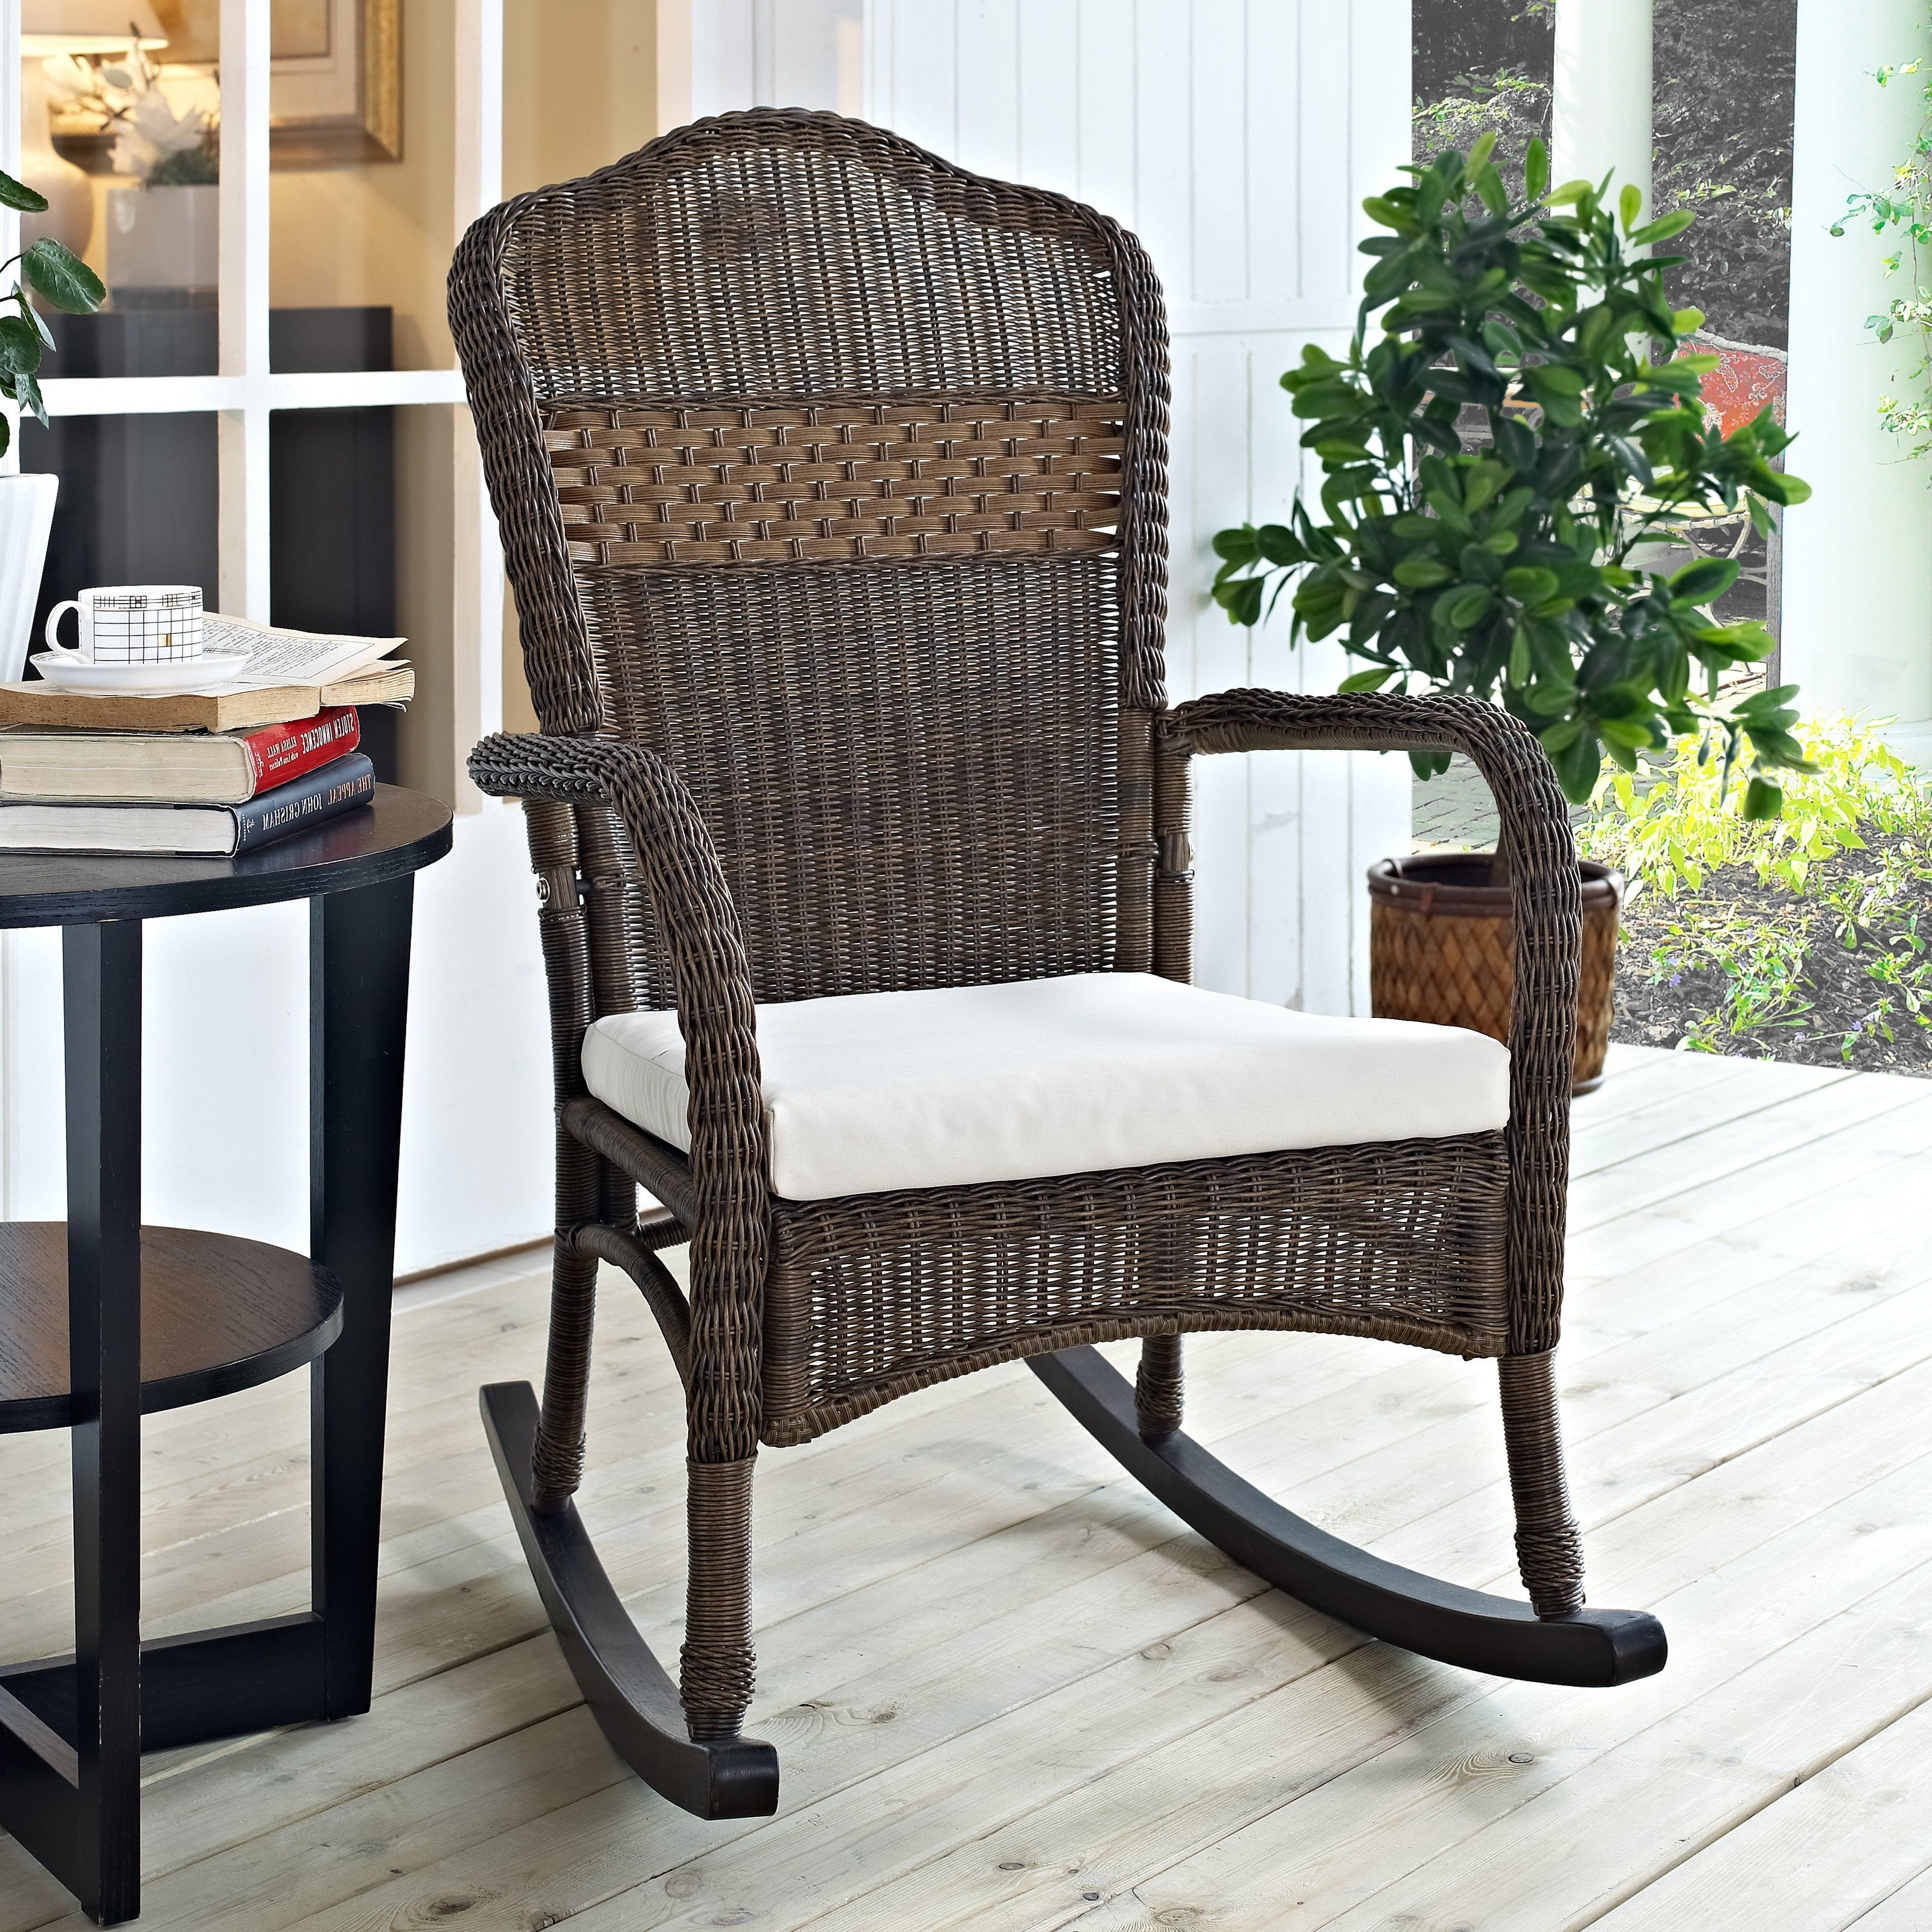 Outdoor Coral Coast Mocha Resin Wicker Rocking Chair With Beige In Fashionable Outdoor Wicker Rocking Chairs With Cushions (View 2 of 20)